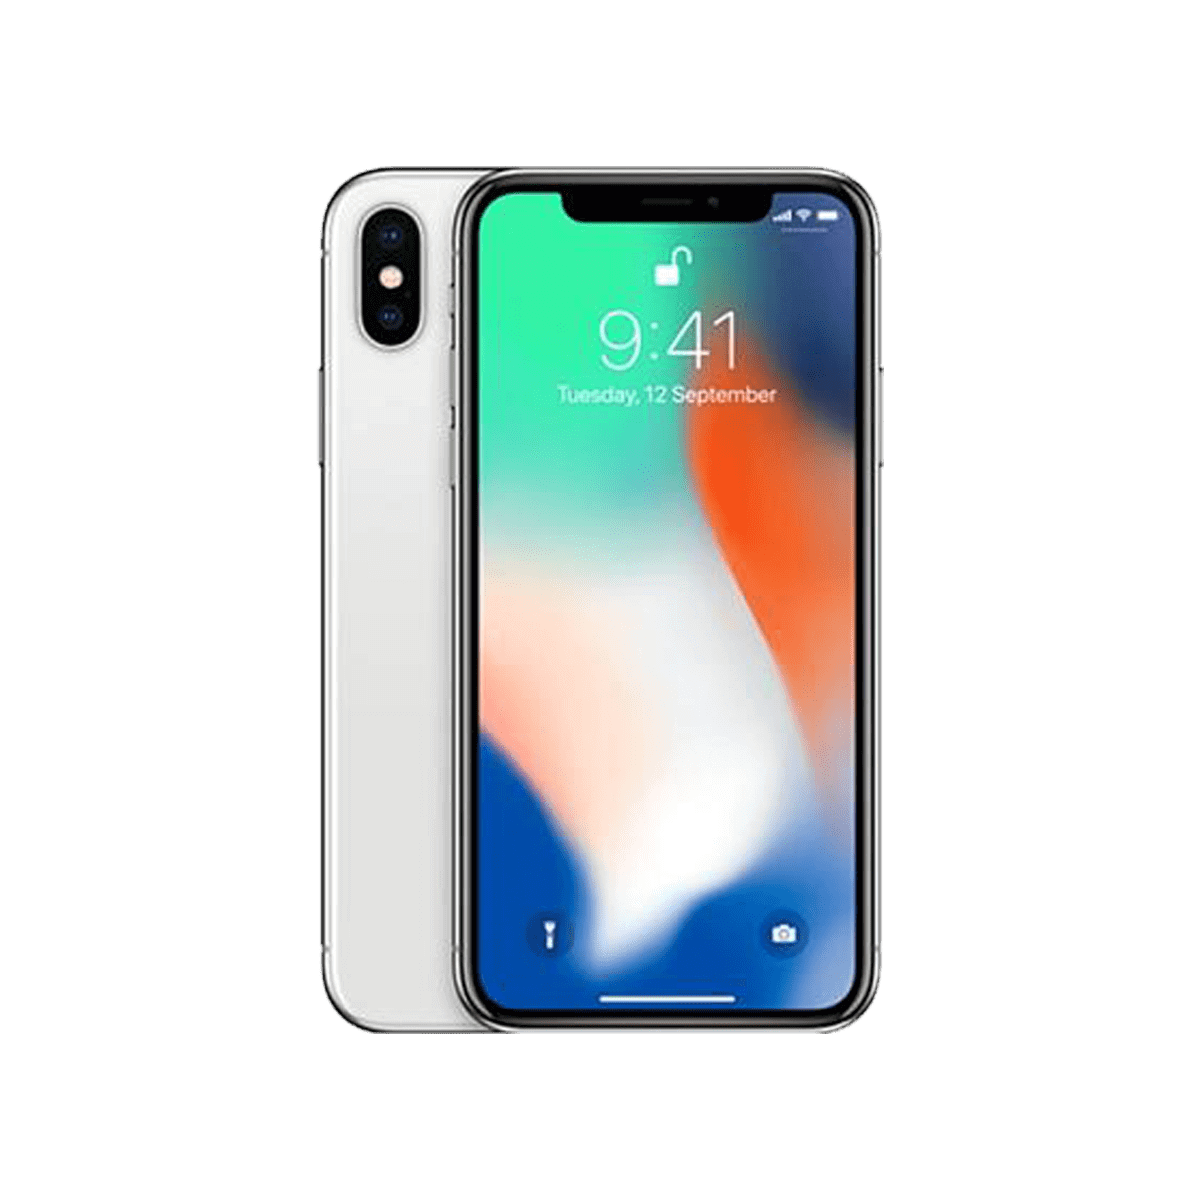 Apple iPhone X 256 GB – Test, Review & Evaluation.